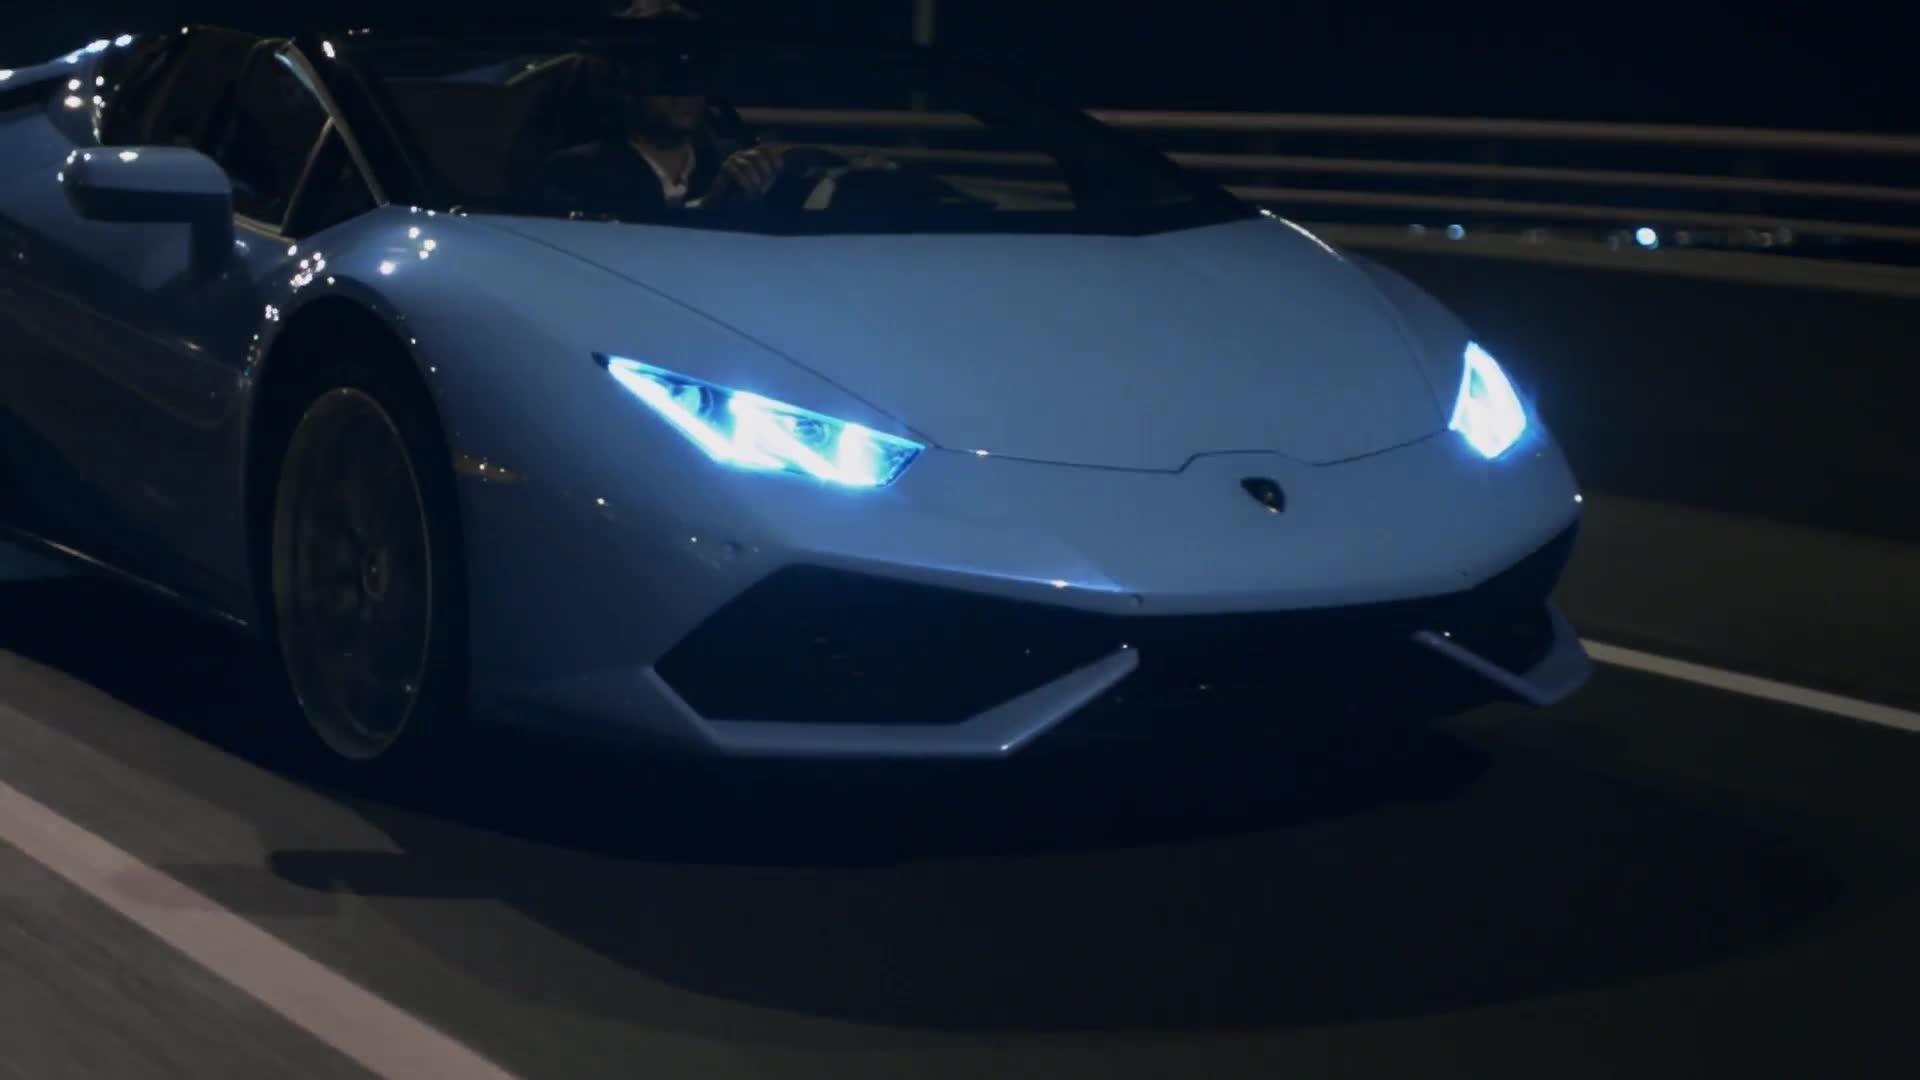 Lamborghini Presents Huracán Model Range at the 2016 Beijing Motorshow